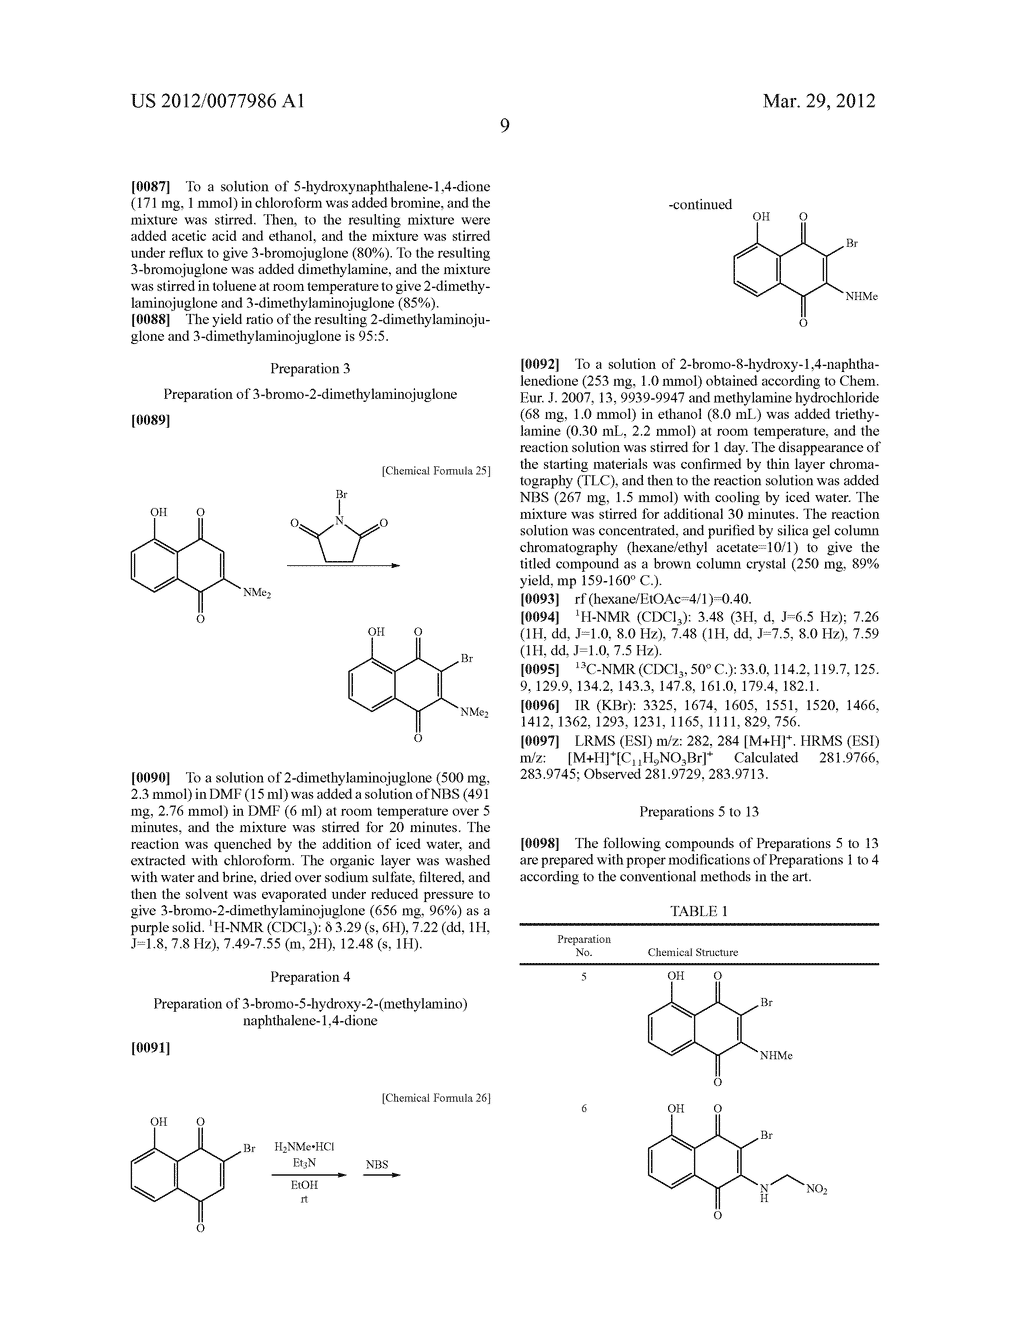 NOVEL PREPARATION OF ANTICANCER-ACTIVE TRICYCLIC COMPOUNDS VIA ALKYNE     COUPLING REACTION - diagram, schematic, and image 10